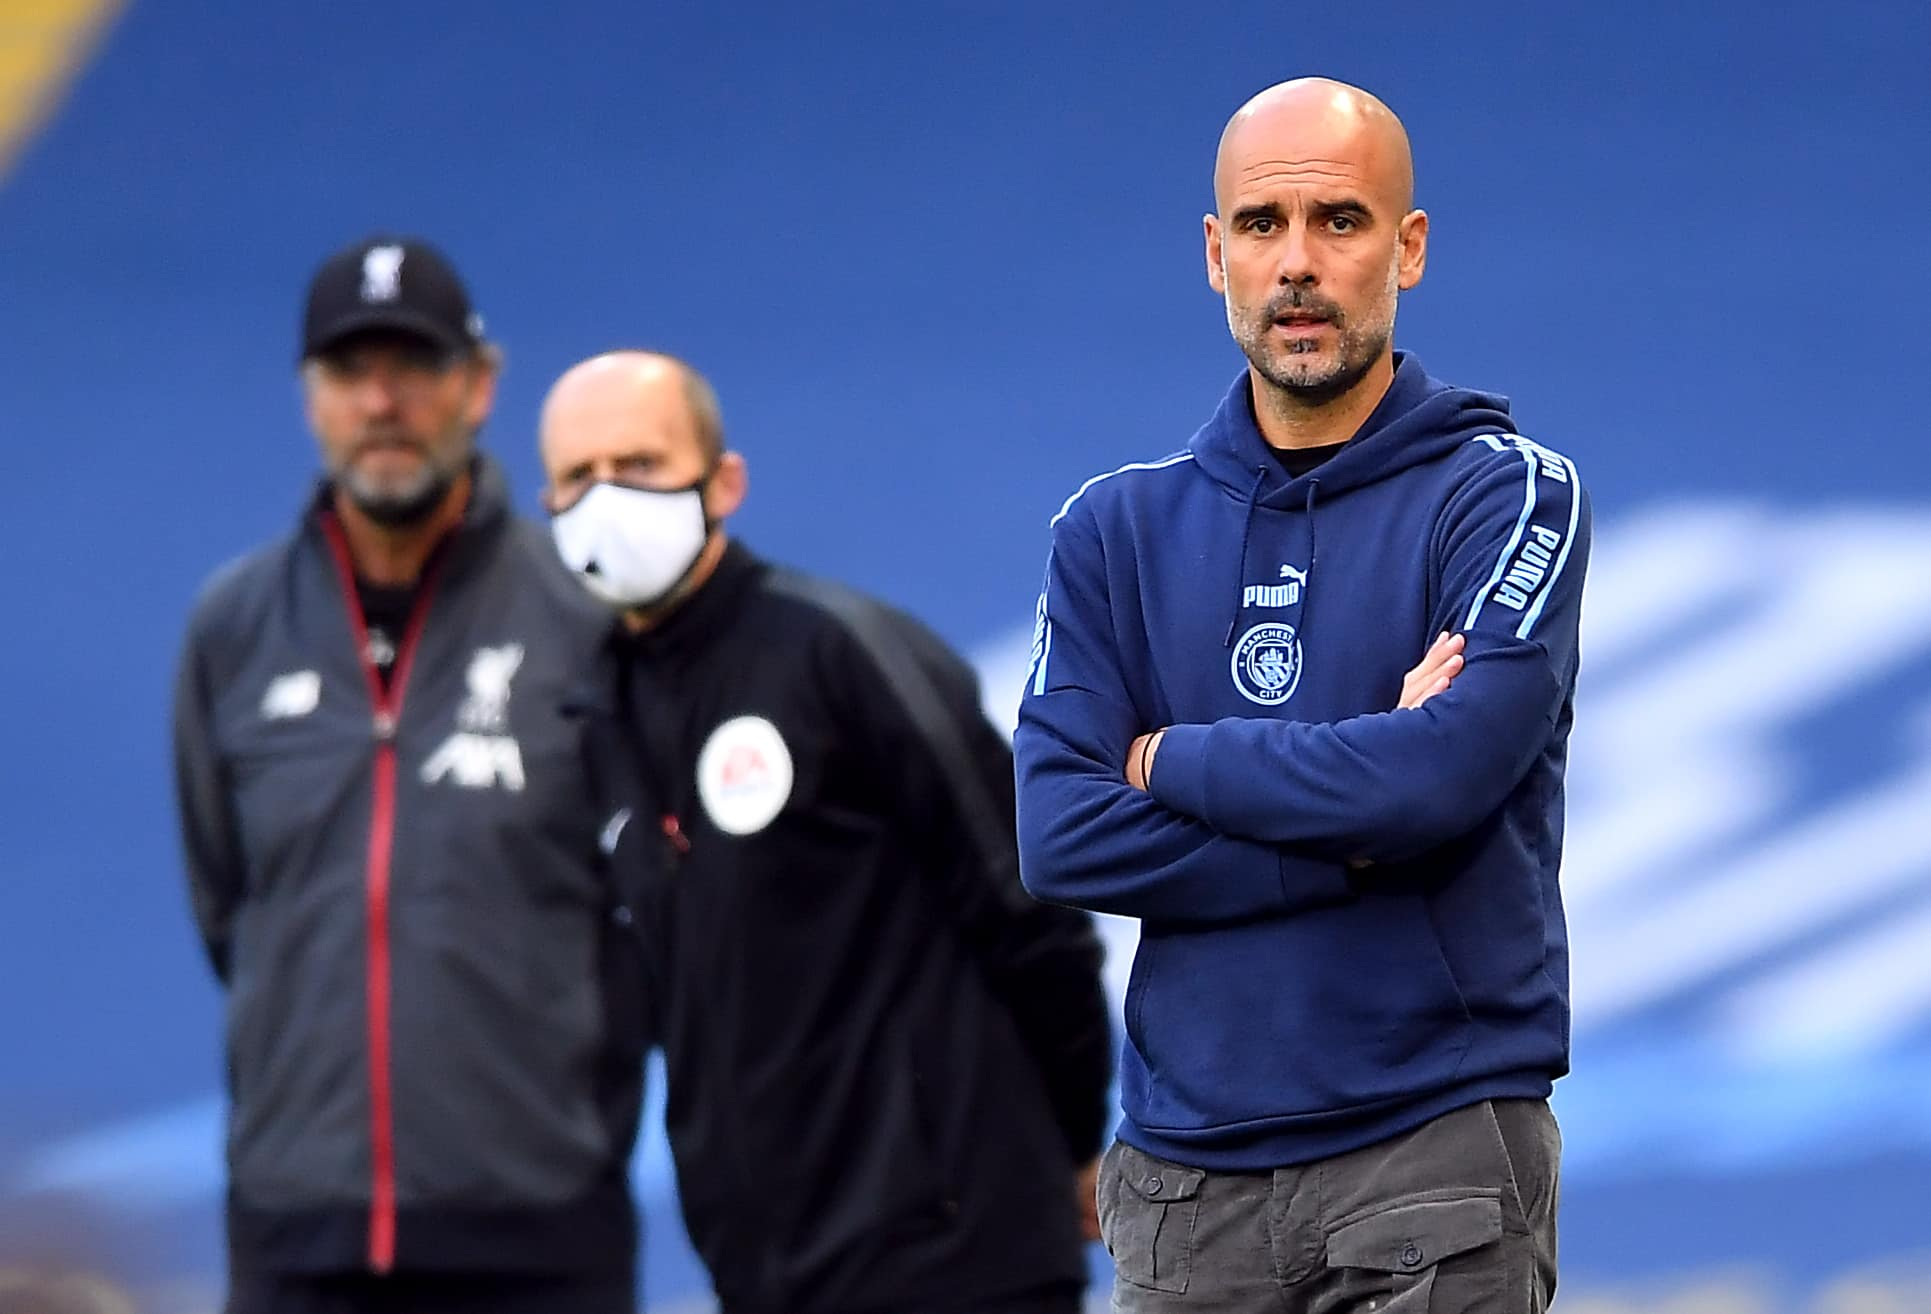 28/11/2020 Daily Predictions: English Premier League 2020-21, Manchester City vs. Burnley